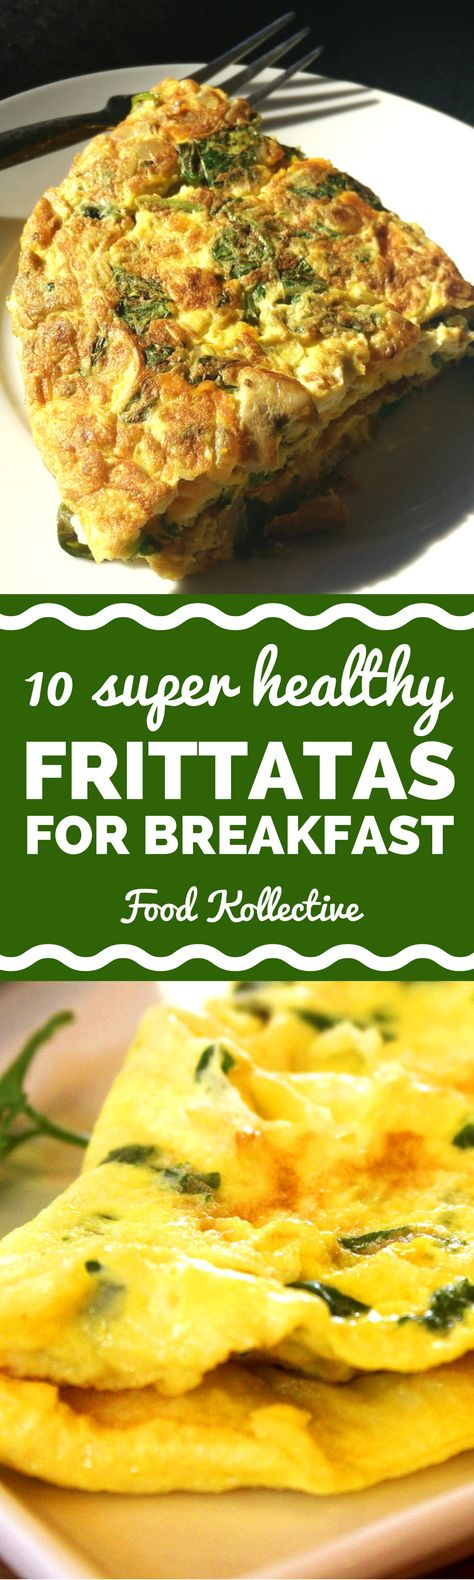 I was looking for healthy frittata recipes and these look tasty! There are recipes for a spinach frittata, tomato frittata, zucchini frittata, and more vegetable frittata ideas. These would be great for a healthy breakfast. Now I know what to make for brunch! Collected on FoodKollective.com